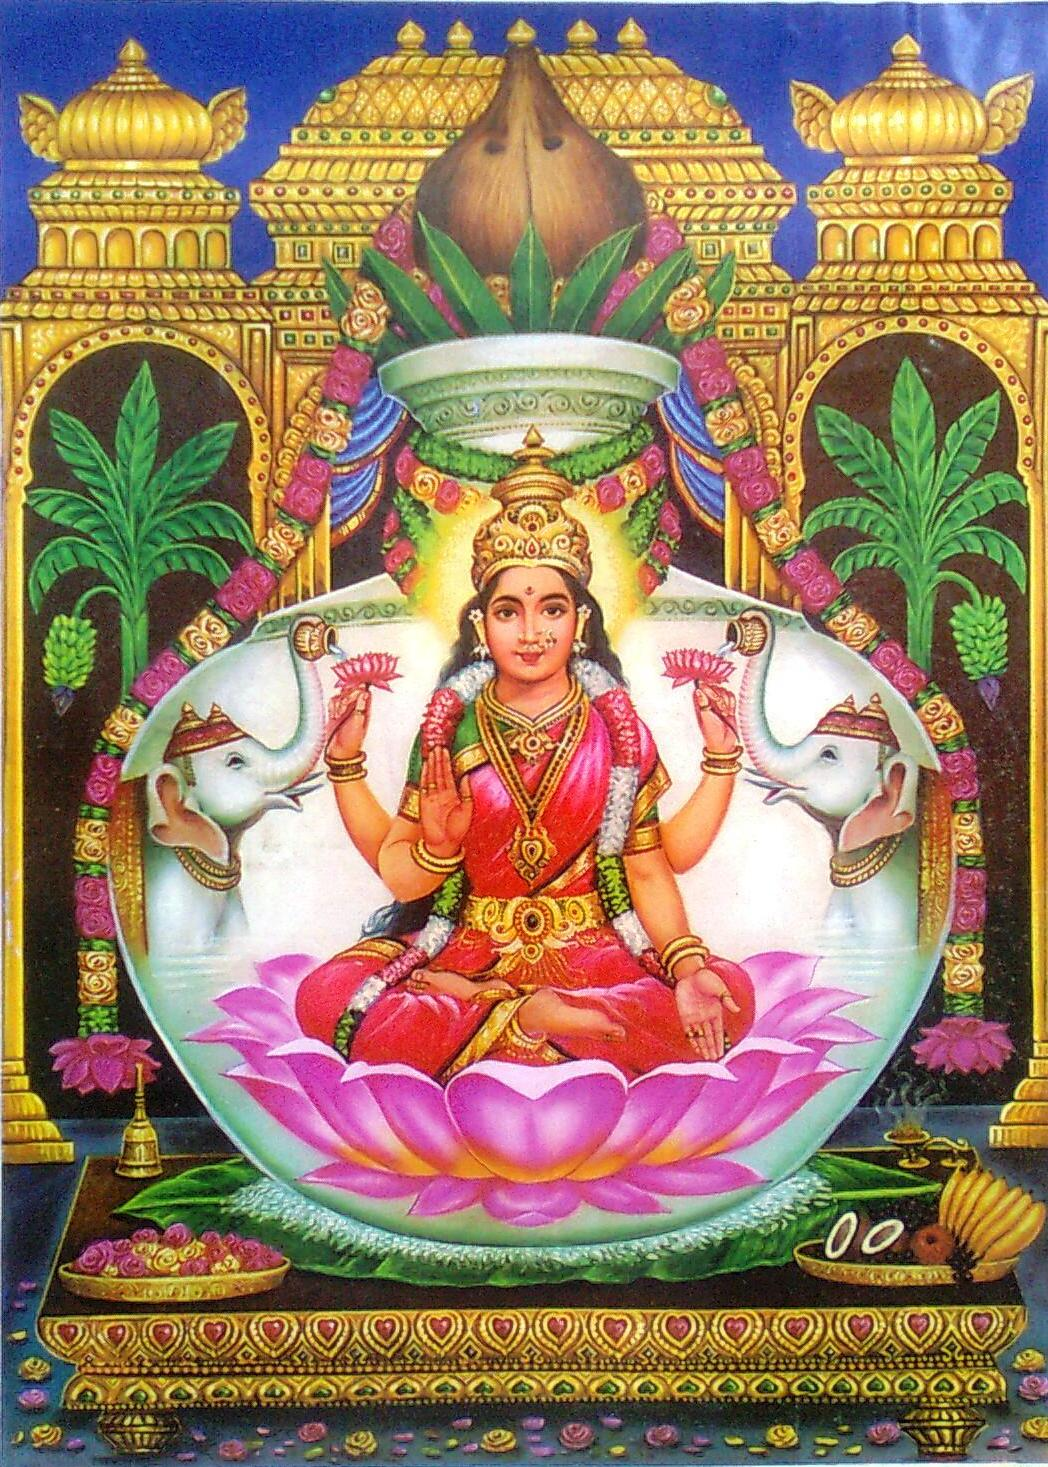 Sri Varalakshmi Vratha Pooja Vidhanam & Story (Tamil Version) By K.Ganesa Sastrigal & K.Murthy Sastrigal Devotional Album MP3 Songs